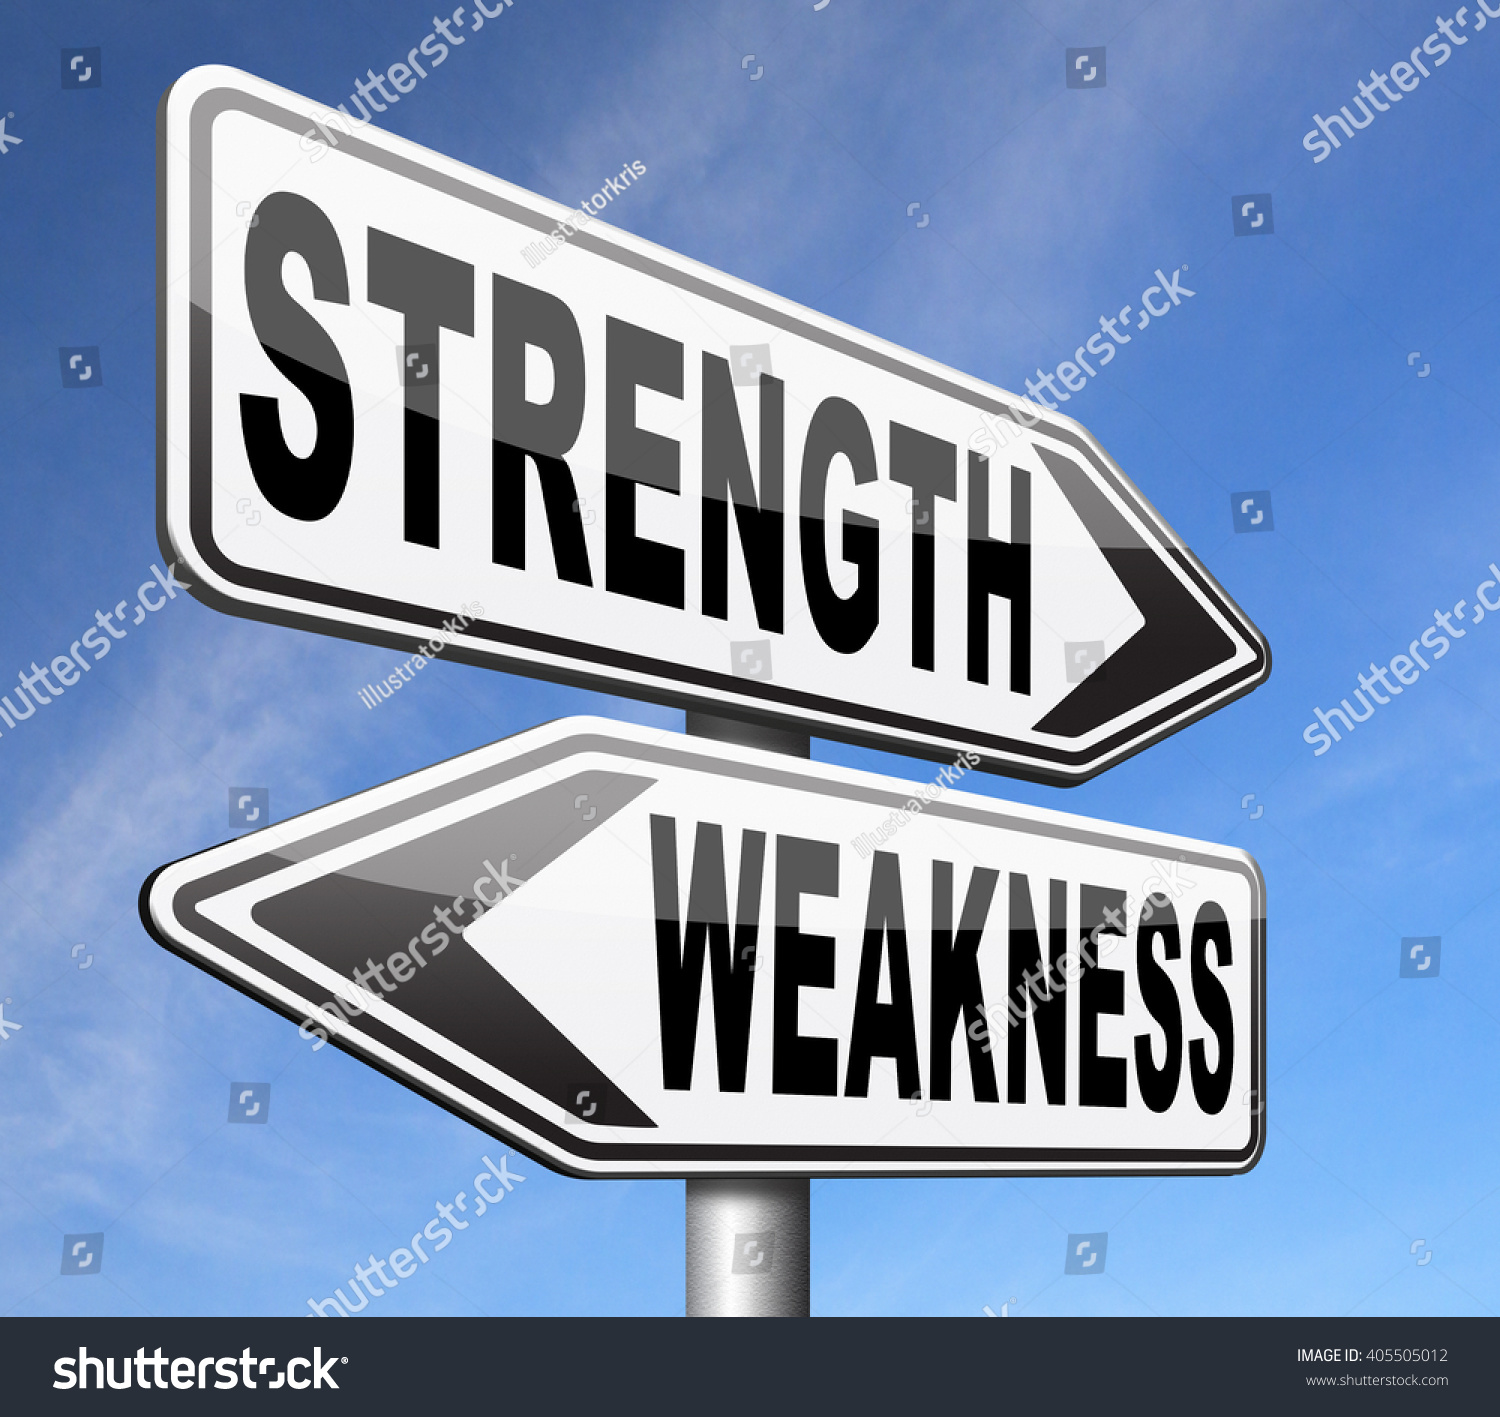 strength or weakness strong or weak points overcome problems save to a lightbox